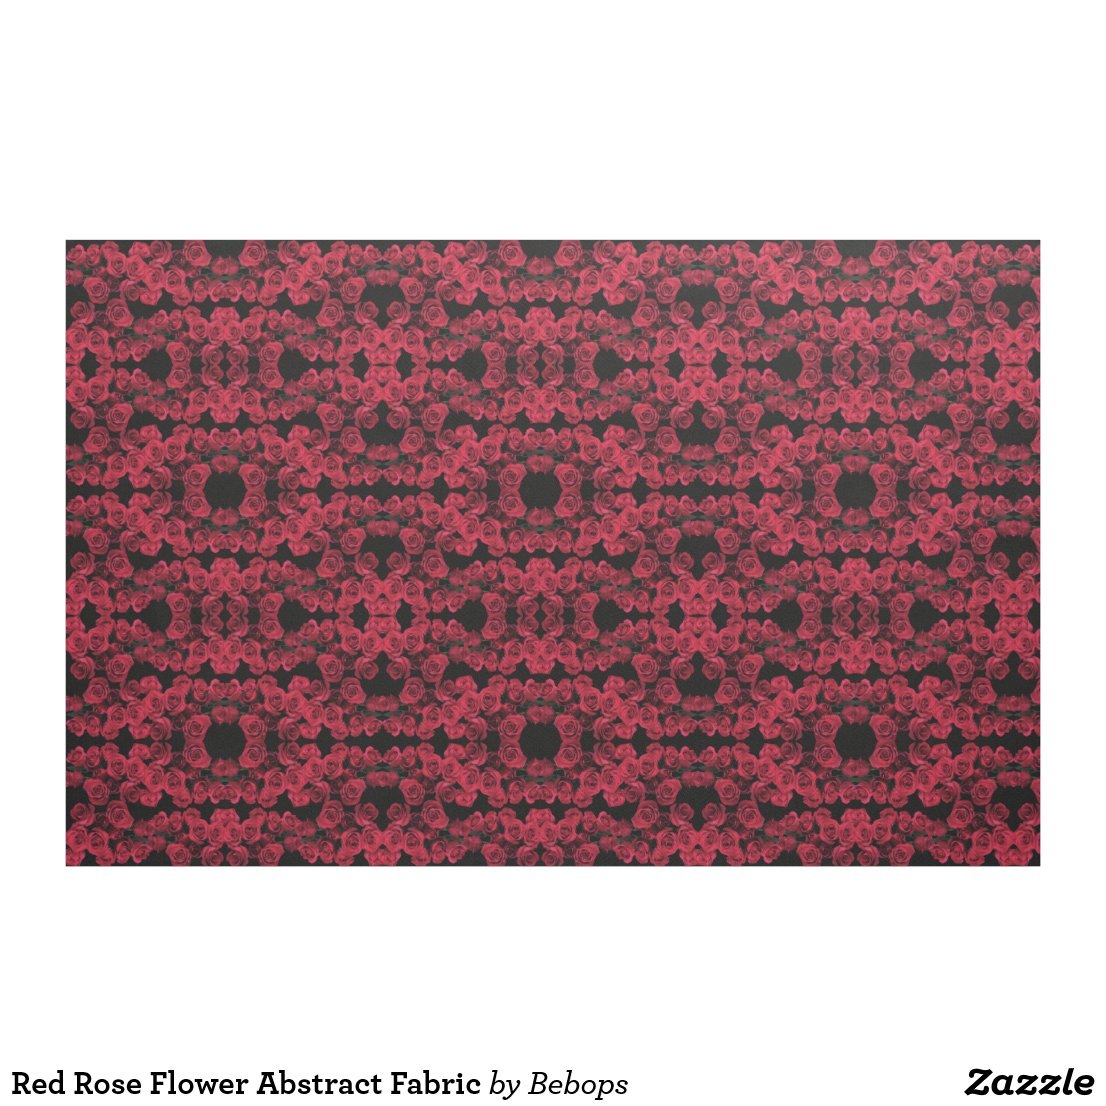 Red Rose Flower Abstract Fabric